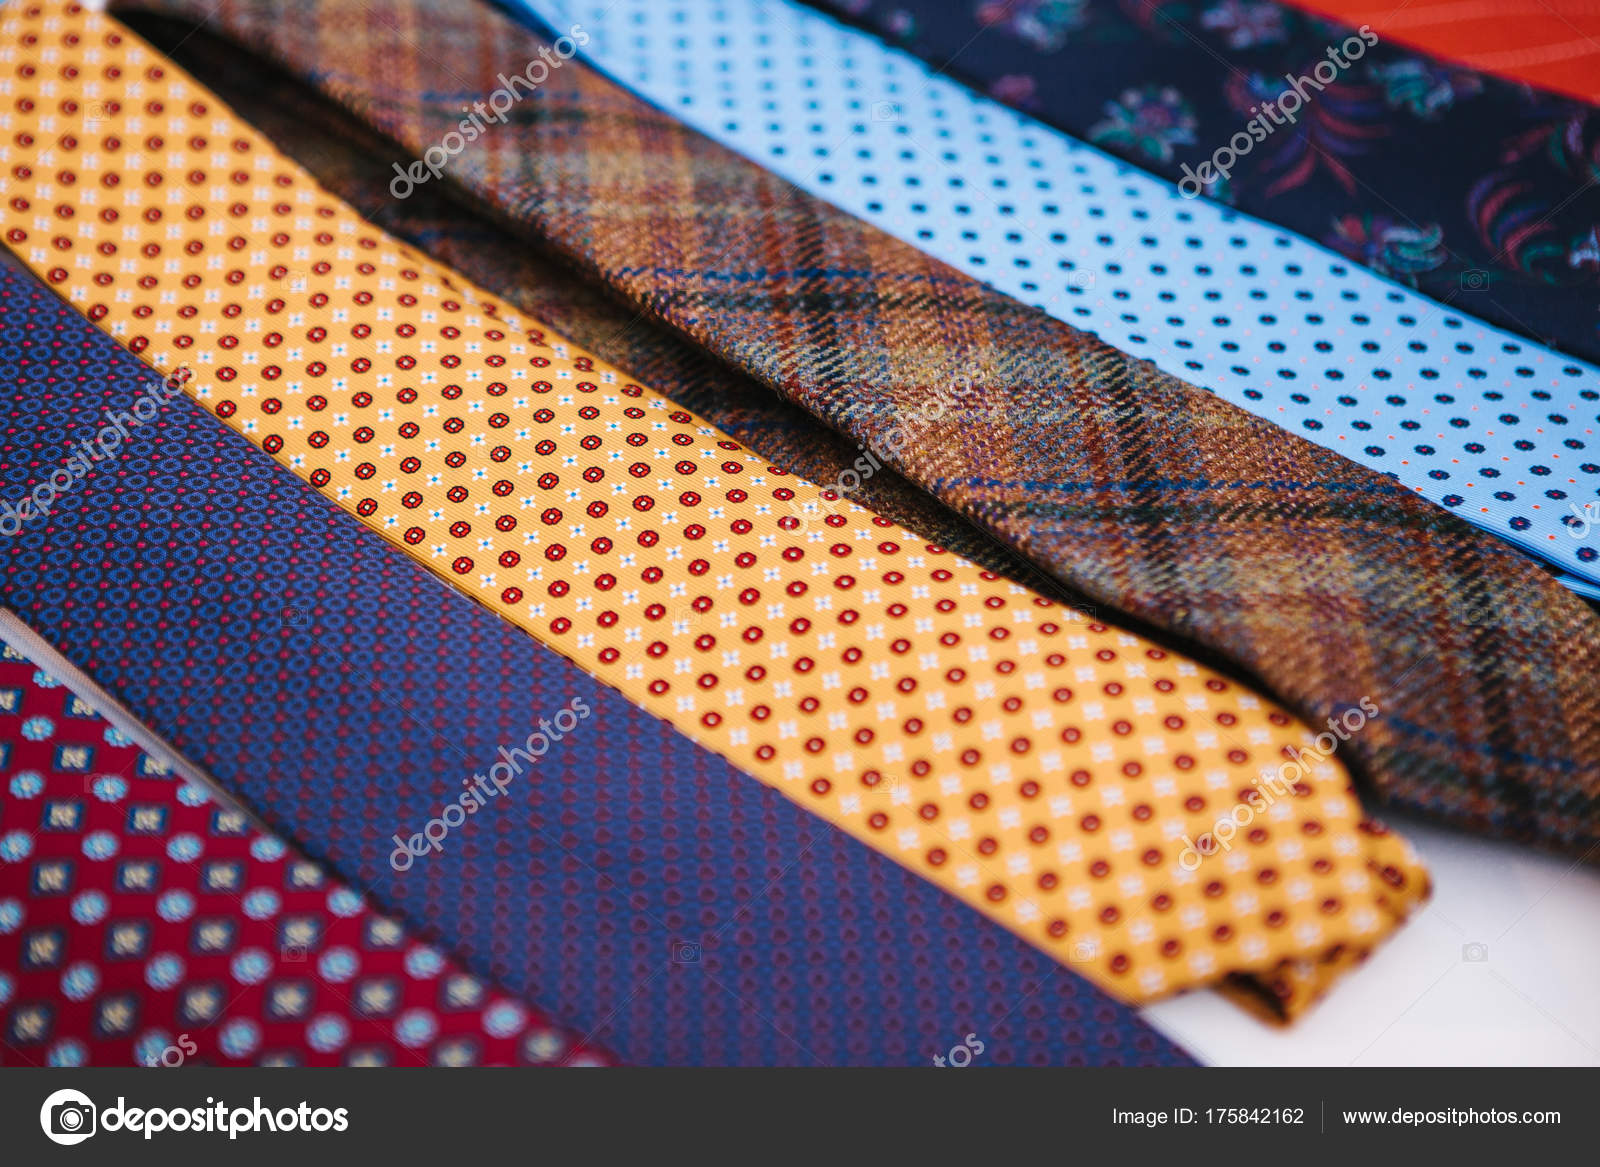 92115f42faebf Fashionable mens accessory.– stock image. Many multi-colored ties in a row.  Supplement to mens clothing in business style